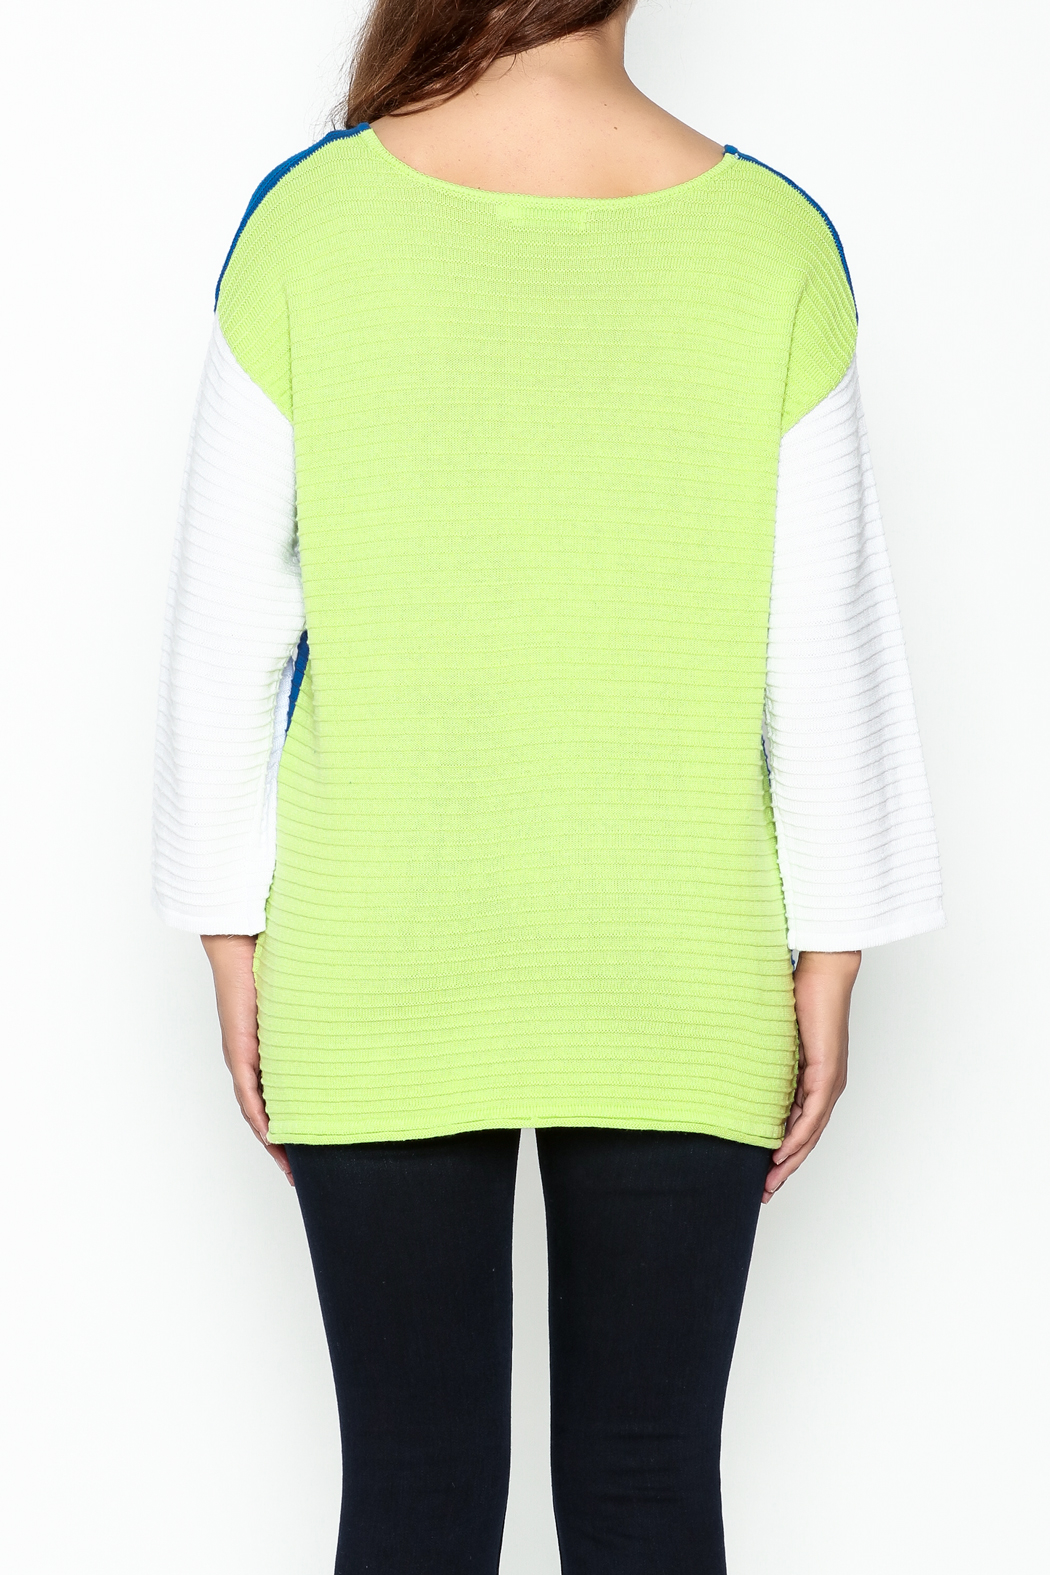 Lulu B Color Block Sweater - Back Cropped Image